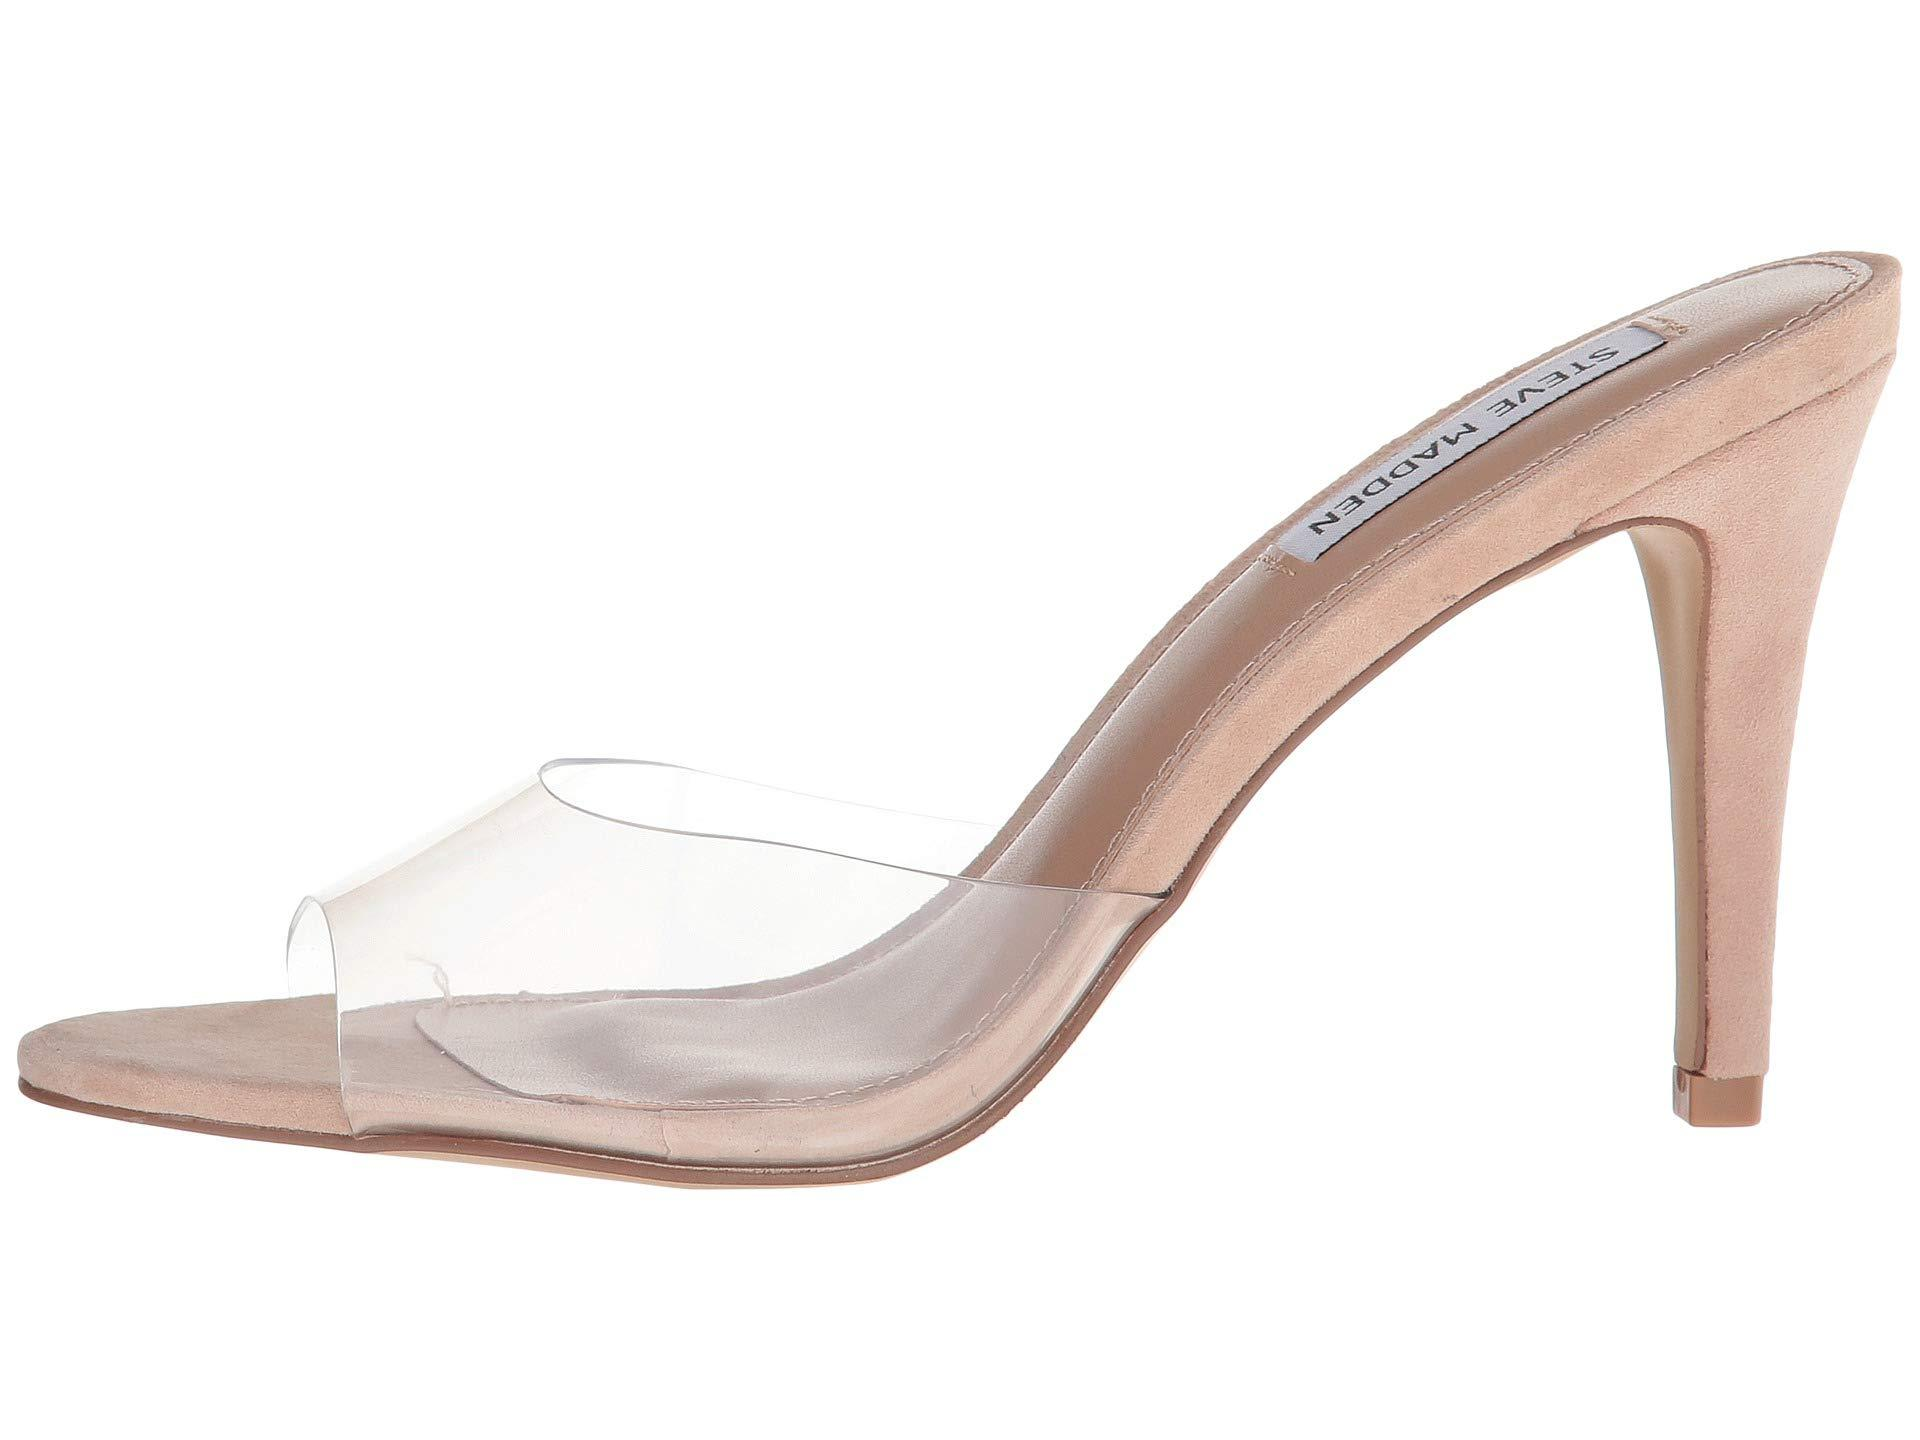 decb957cb1b Lyst - Steve Madden Erin Heeled Mule (pink Neon) High Heels in Natural